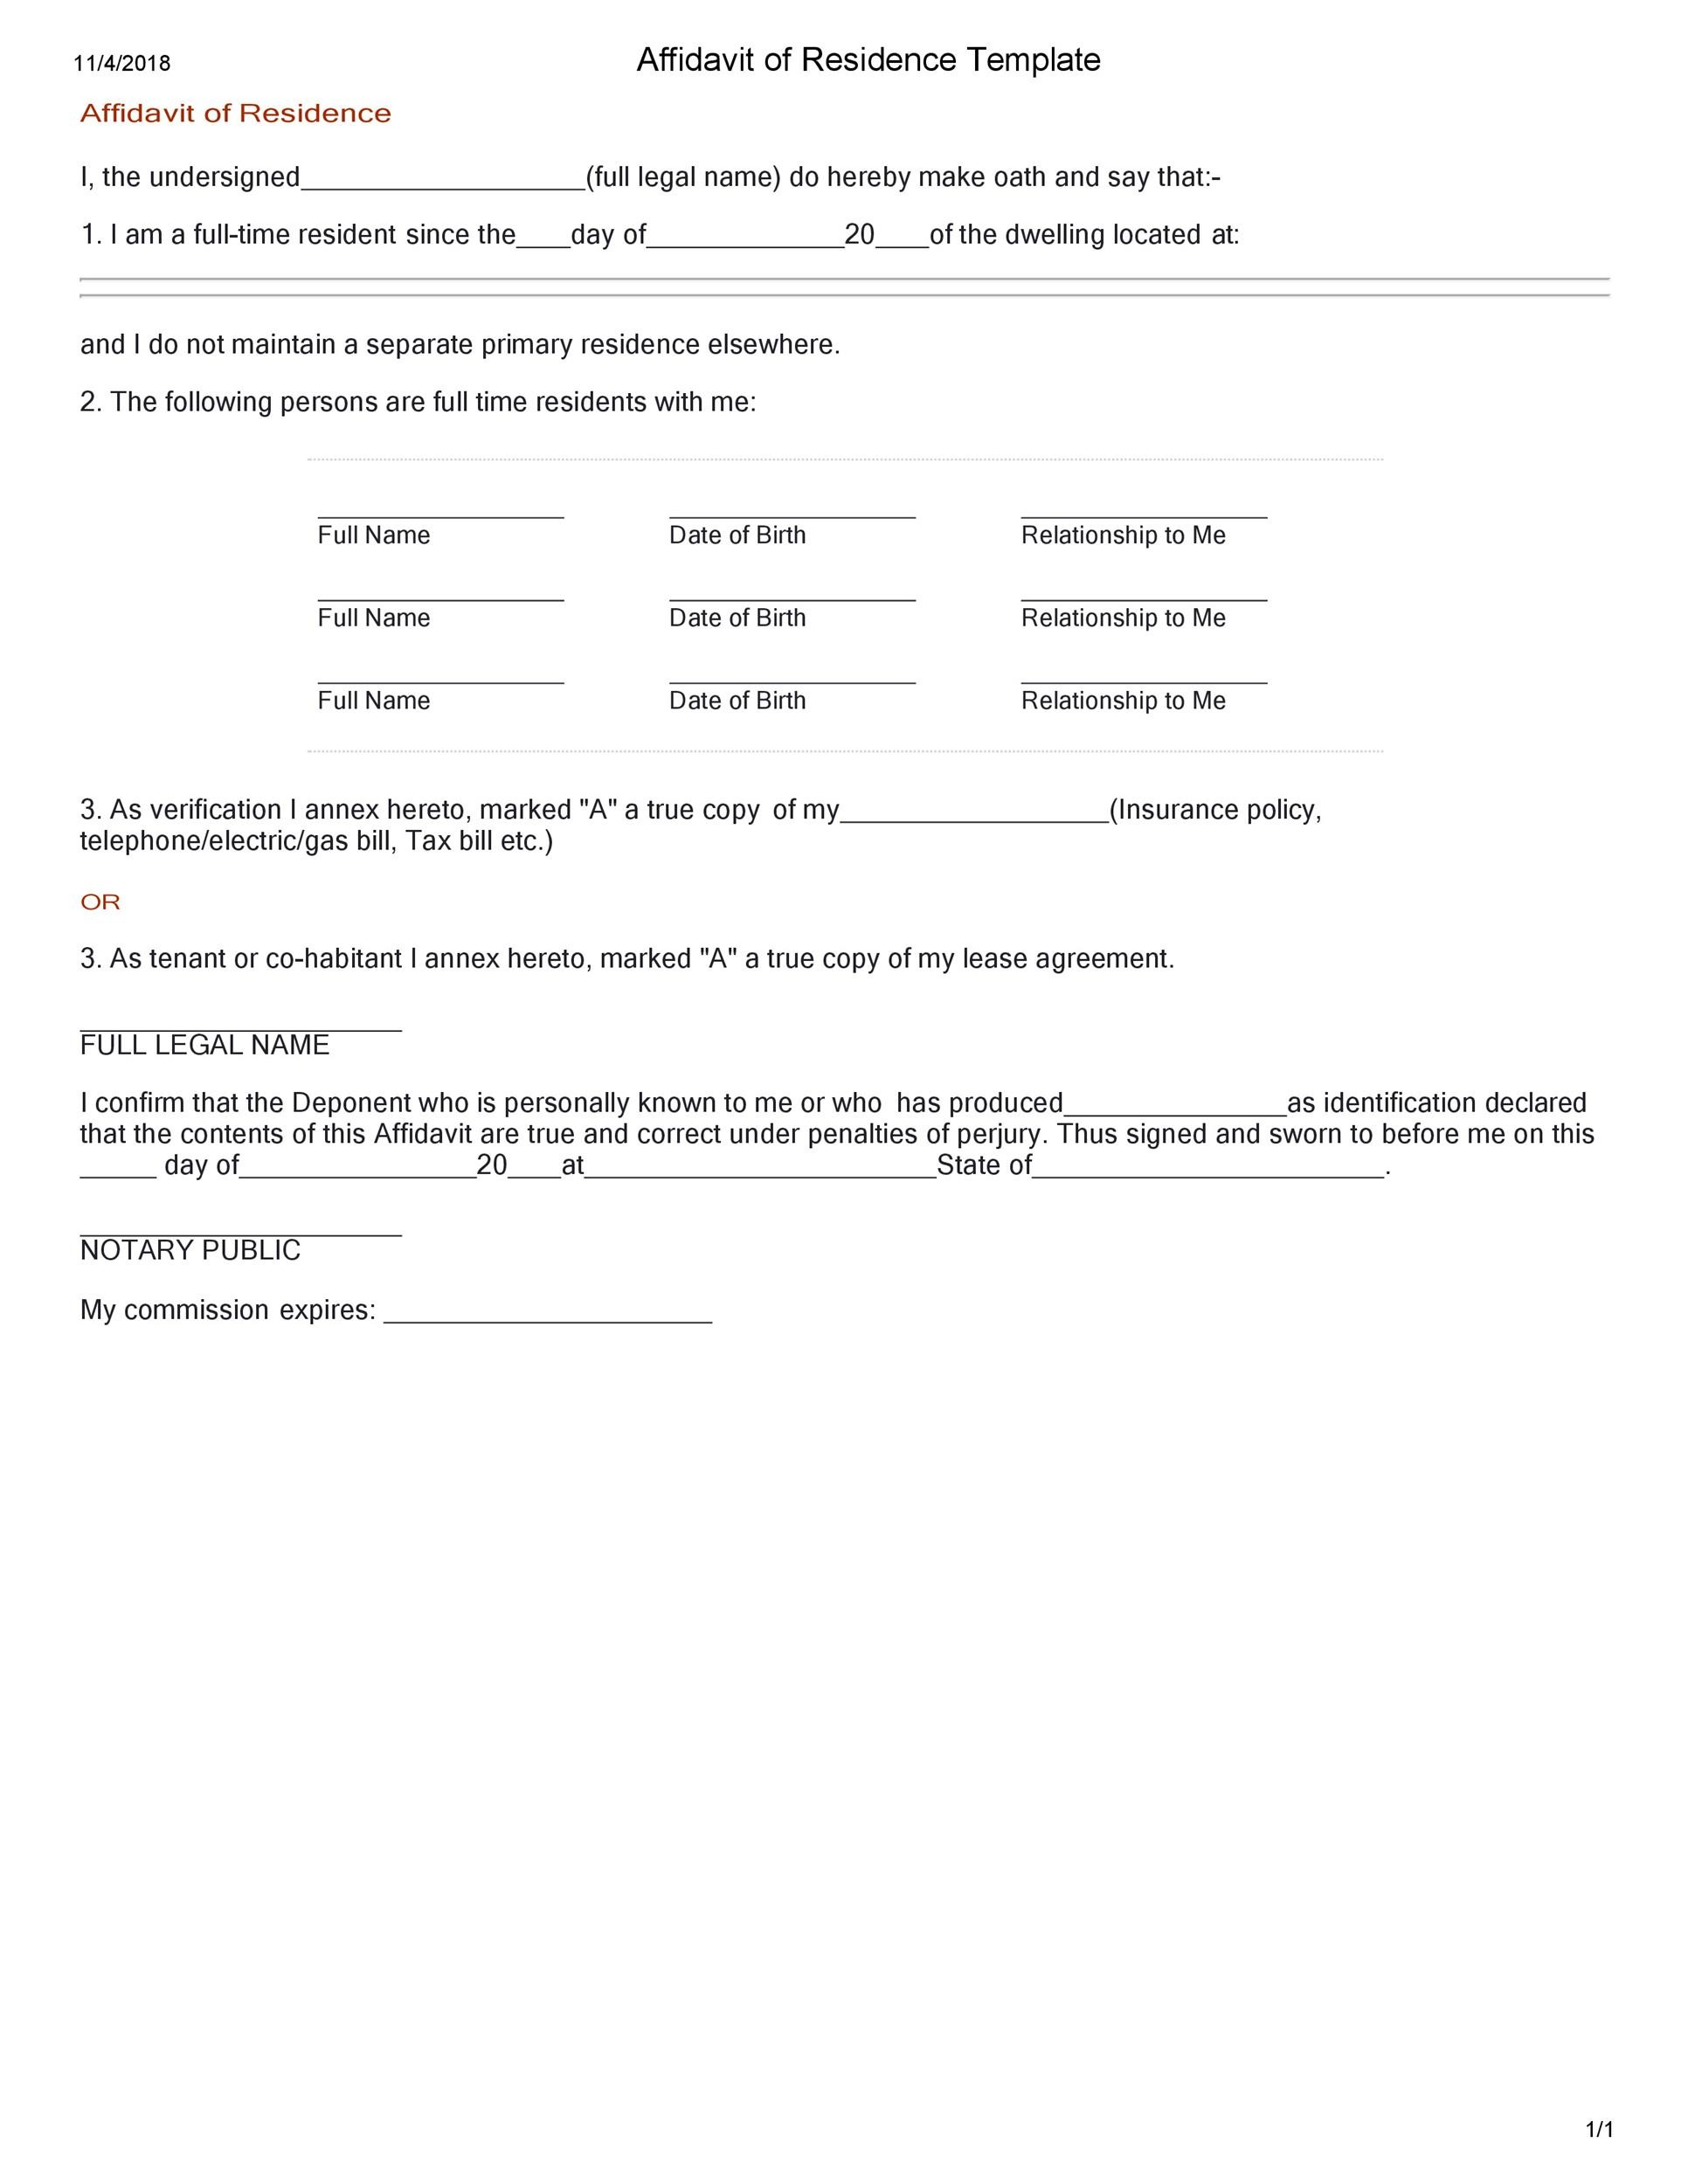 Landlord Proof Of Residency Letter from templatelab.com